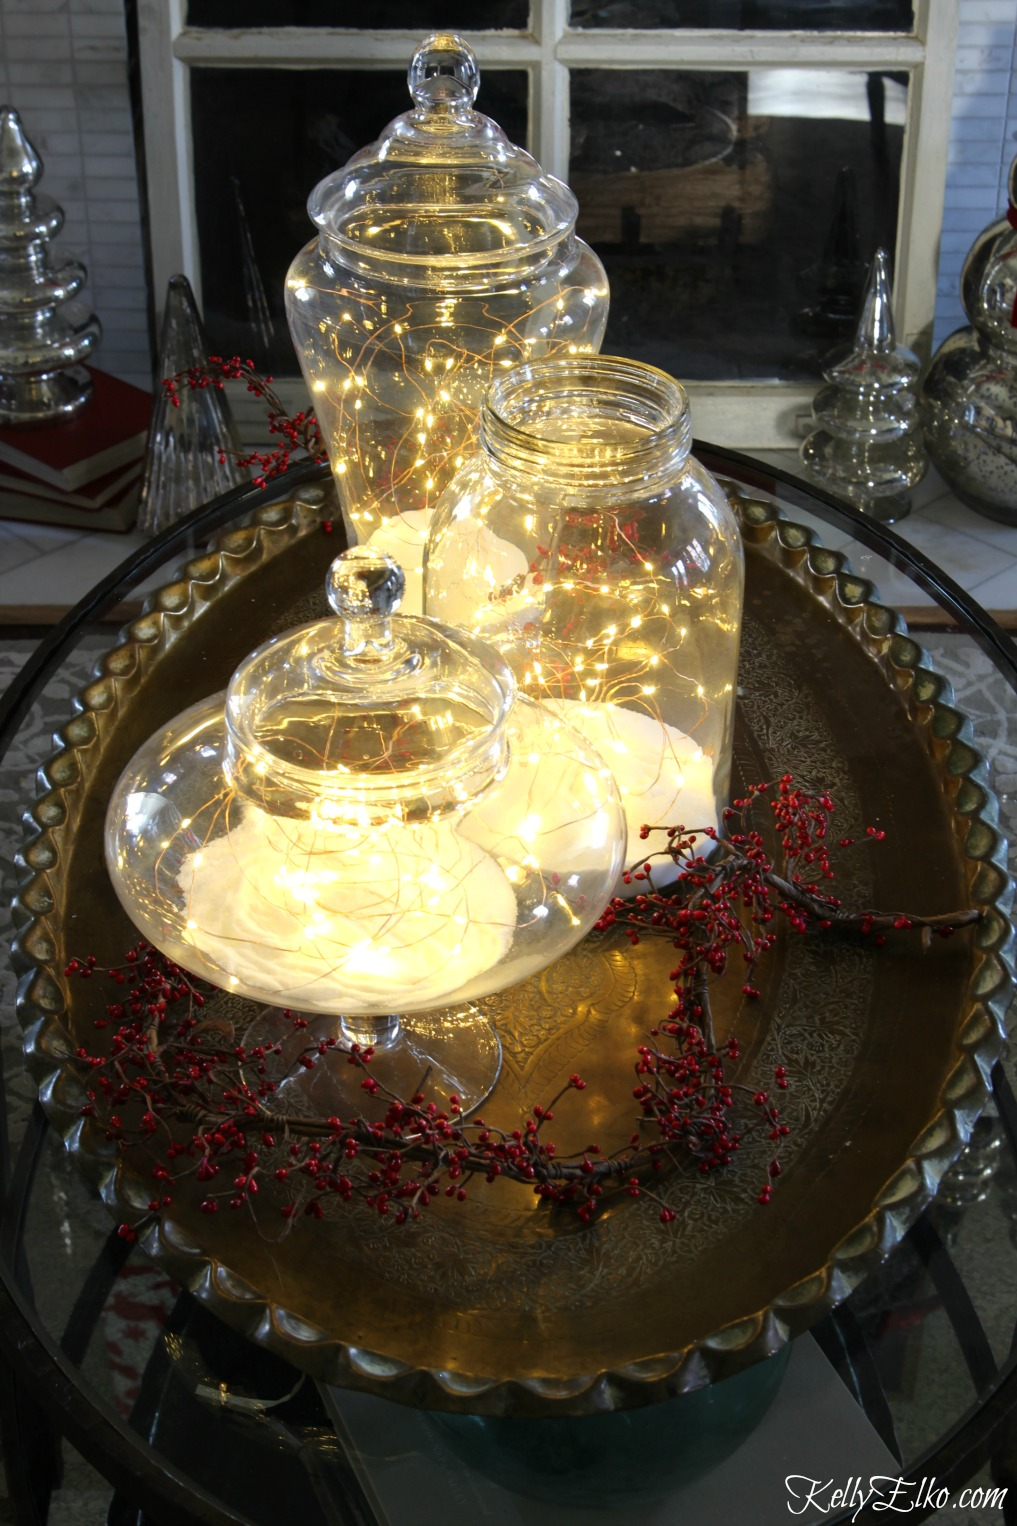 Creative Christmas Decorating Ideas - love these fairy jars and she shares the best lights to use! kellyelko.com